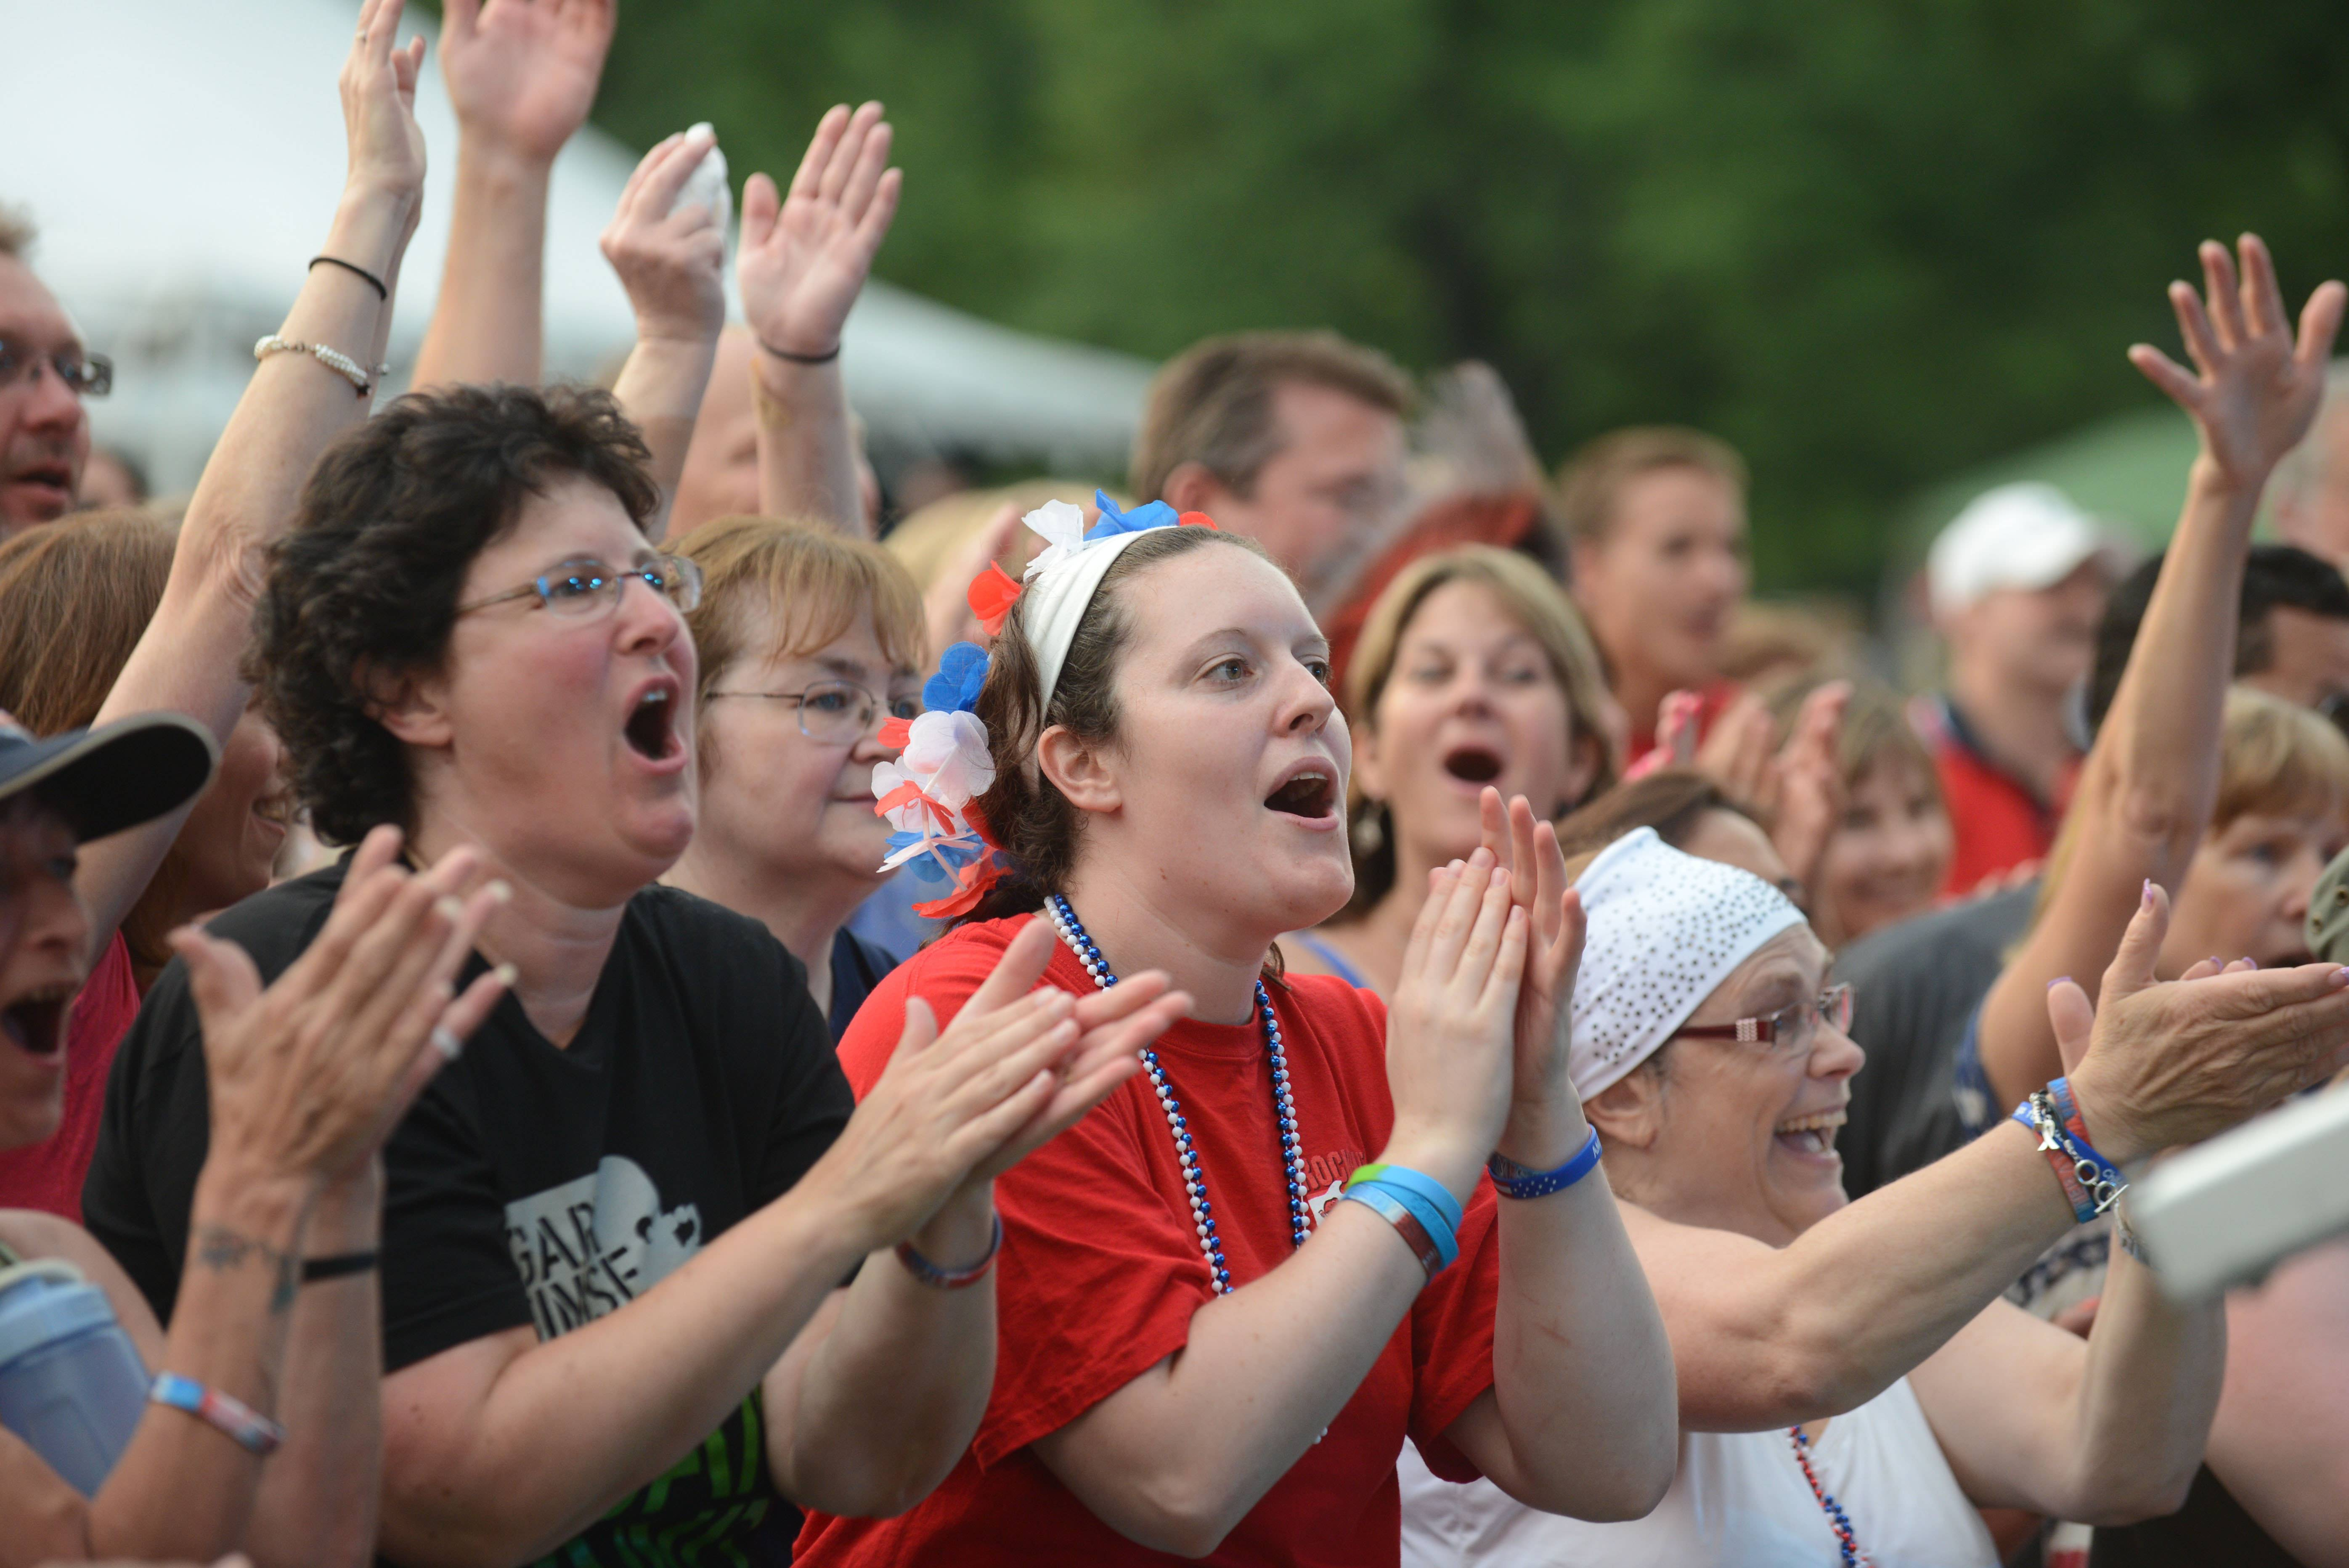 Fans sing and dance at The Rockin' for the Troops show at  Cantigny Park in Wheaton Saturday. It was sold out.